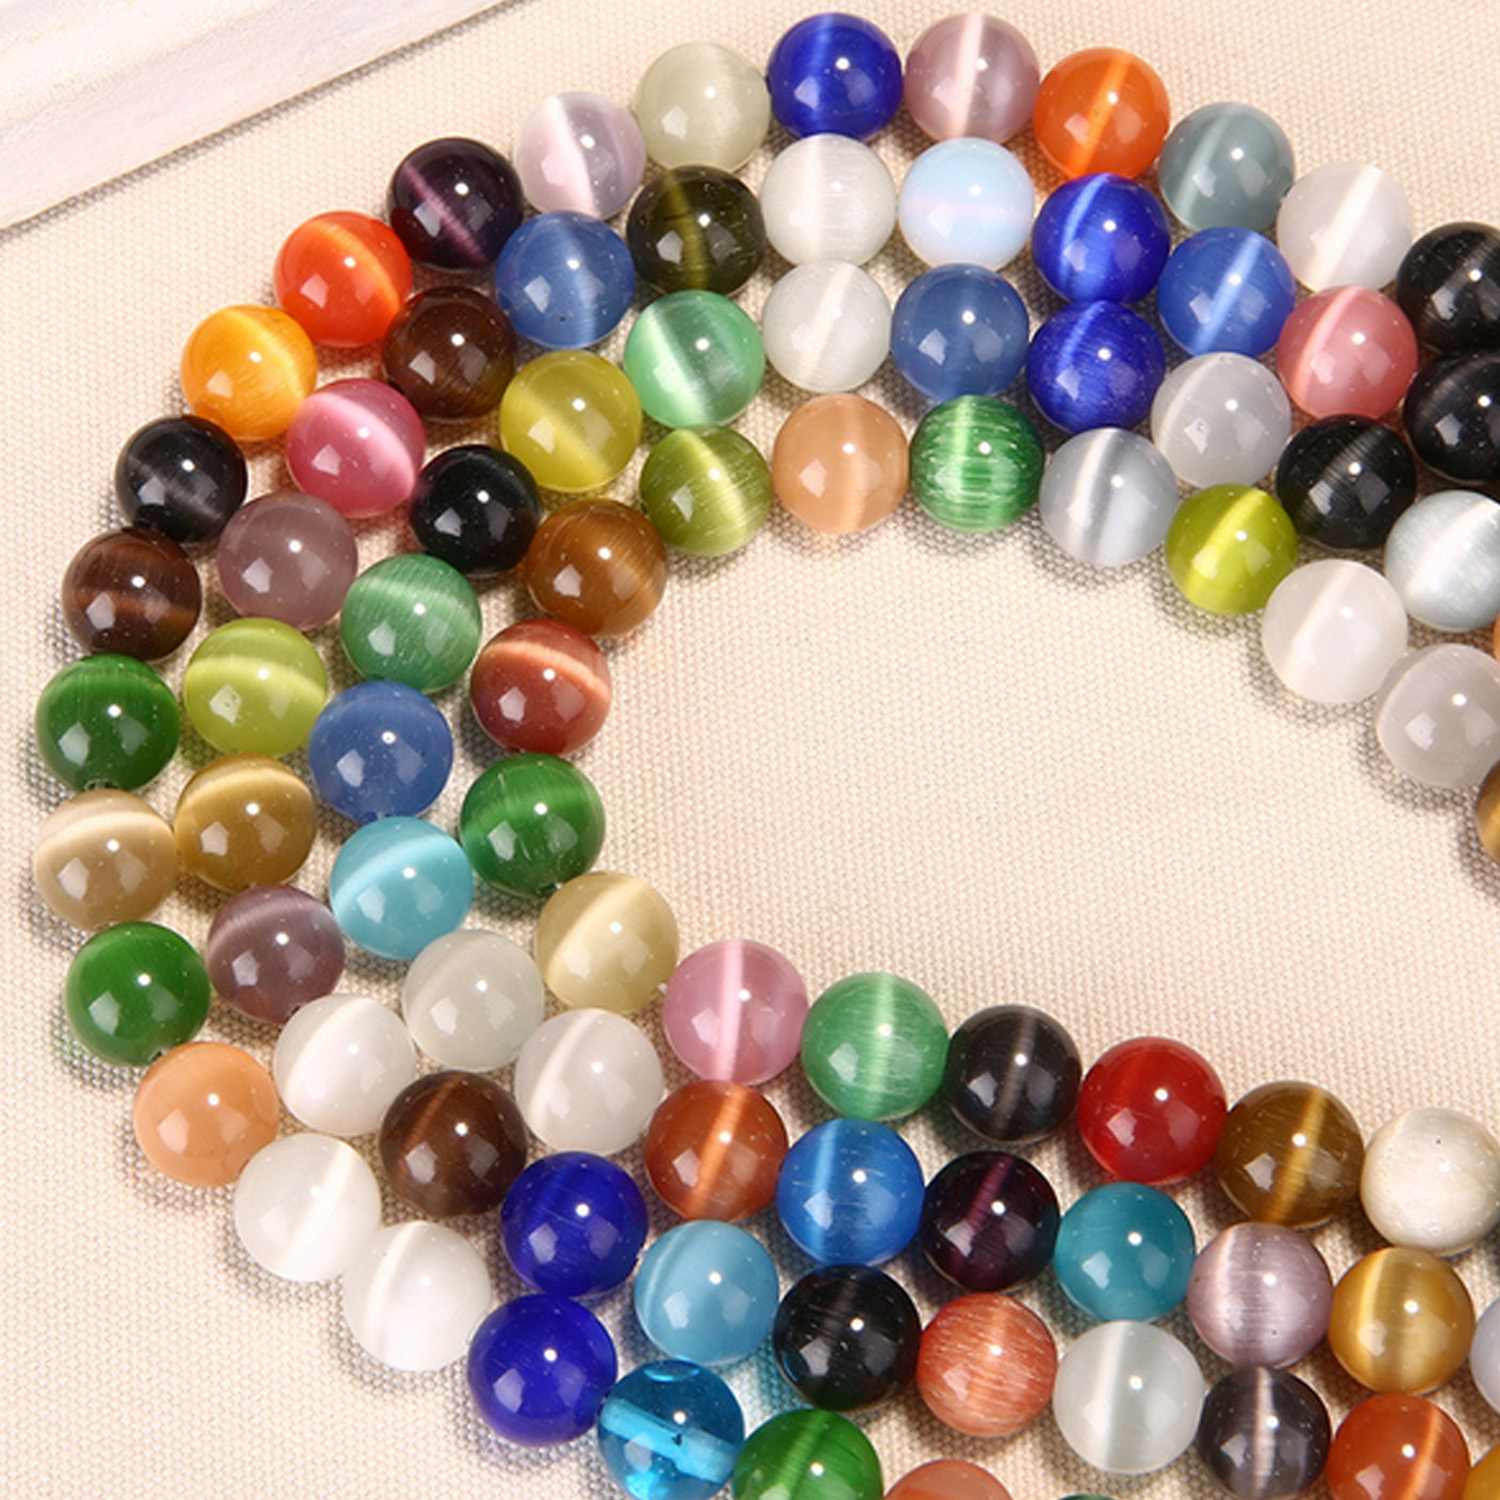 132pcs 6mm Multi-color Natural Round Opal Stone Gemstone Bead Handmade Toy For DIY Craft Making Child Beads Toy Educational Toys